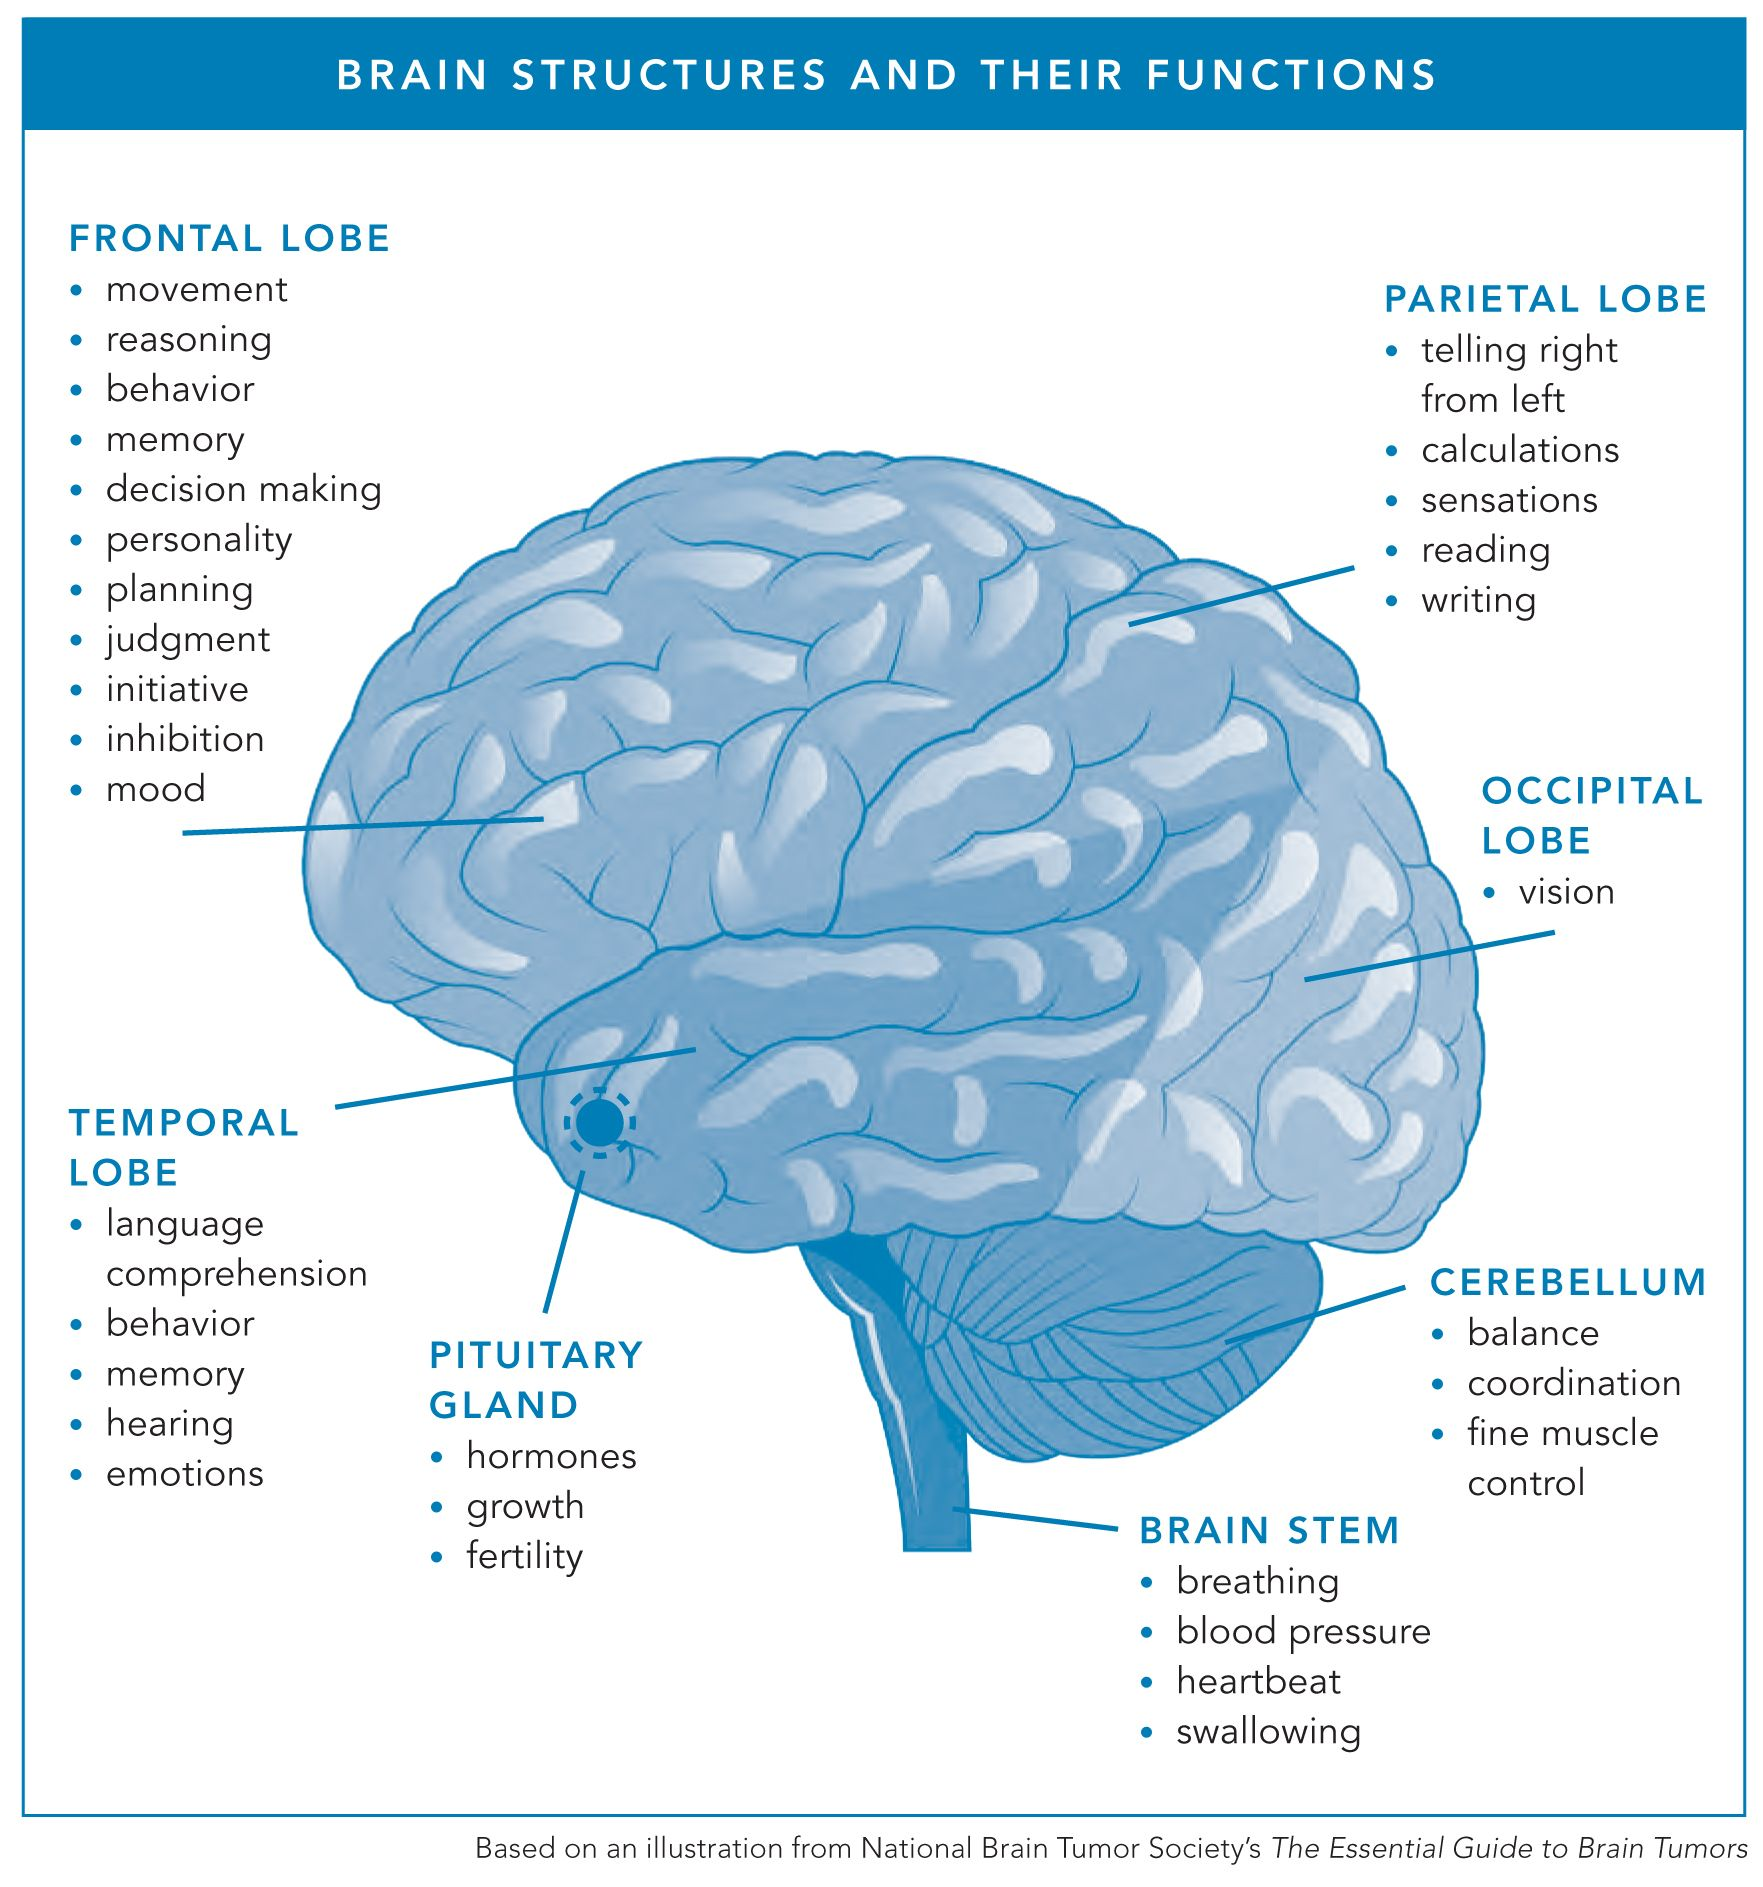 human brain diagram limbic system digital temperature controller circuit structures and functions tumors